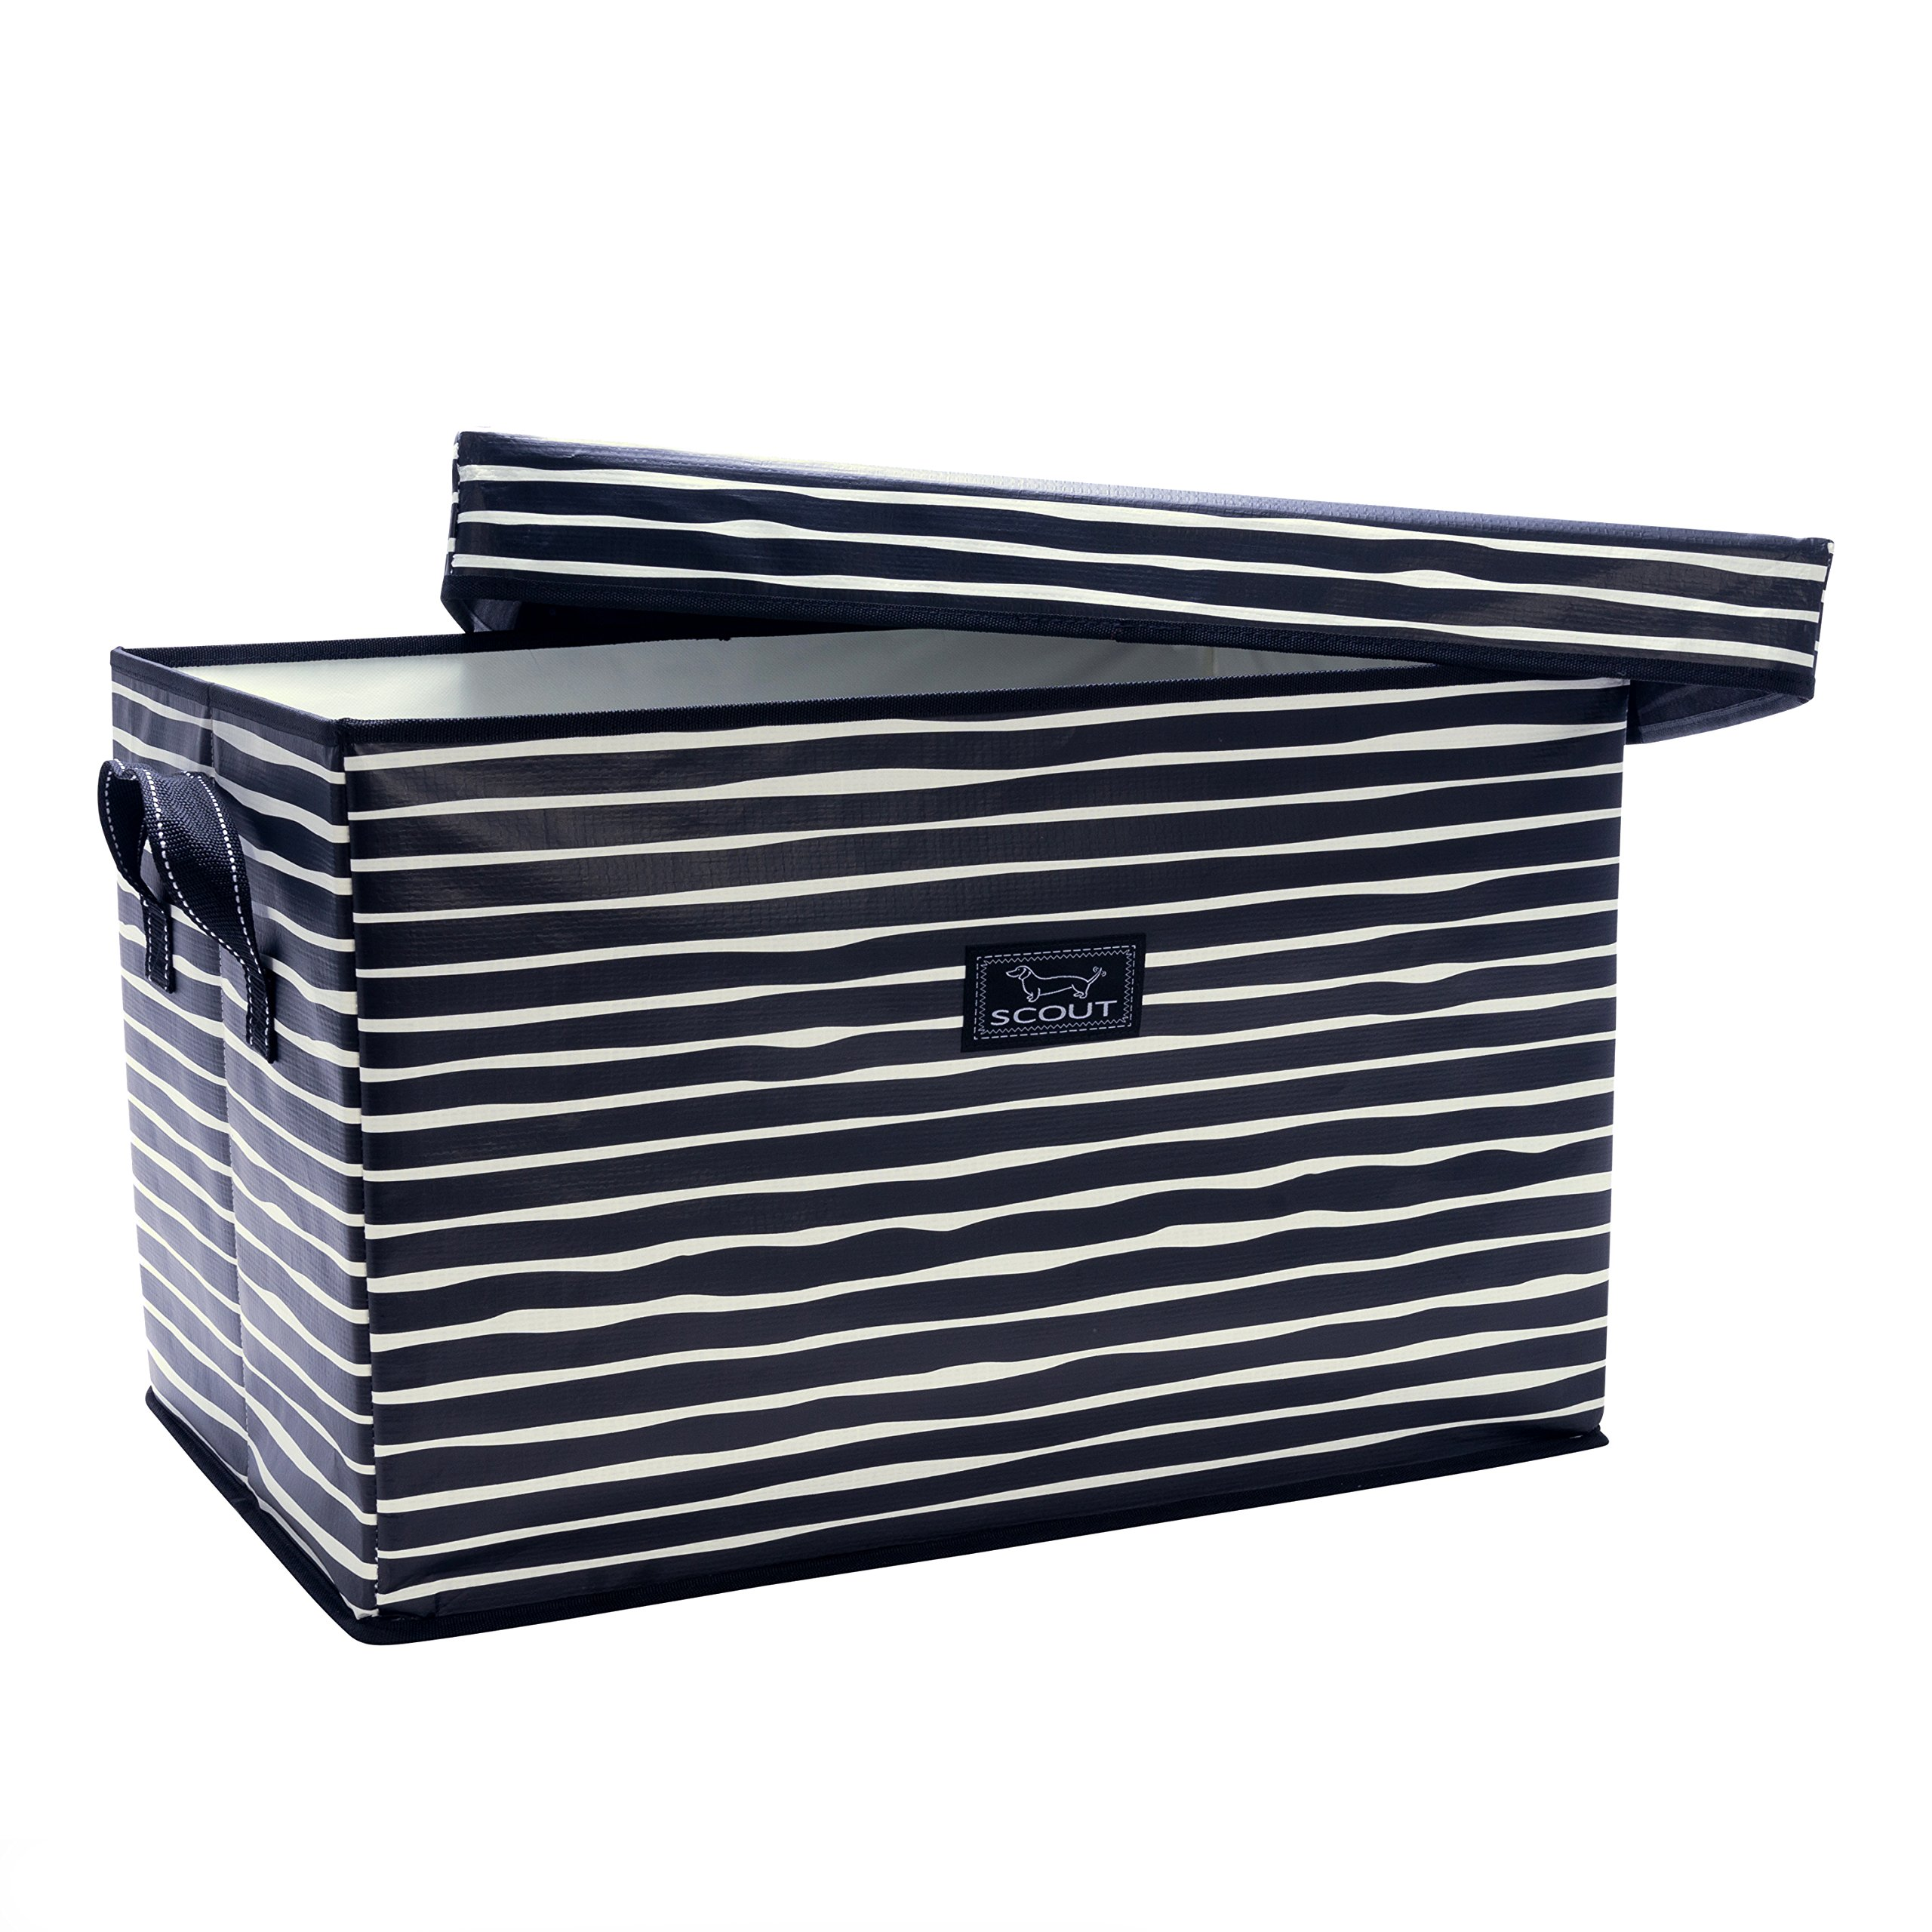 SCOUT Rump Roost Large Lidded Storage Bin, Collapsible and Stackable, Reinforced Side Handles and Bottom, Water Resistant, Ren Noir